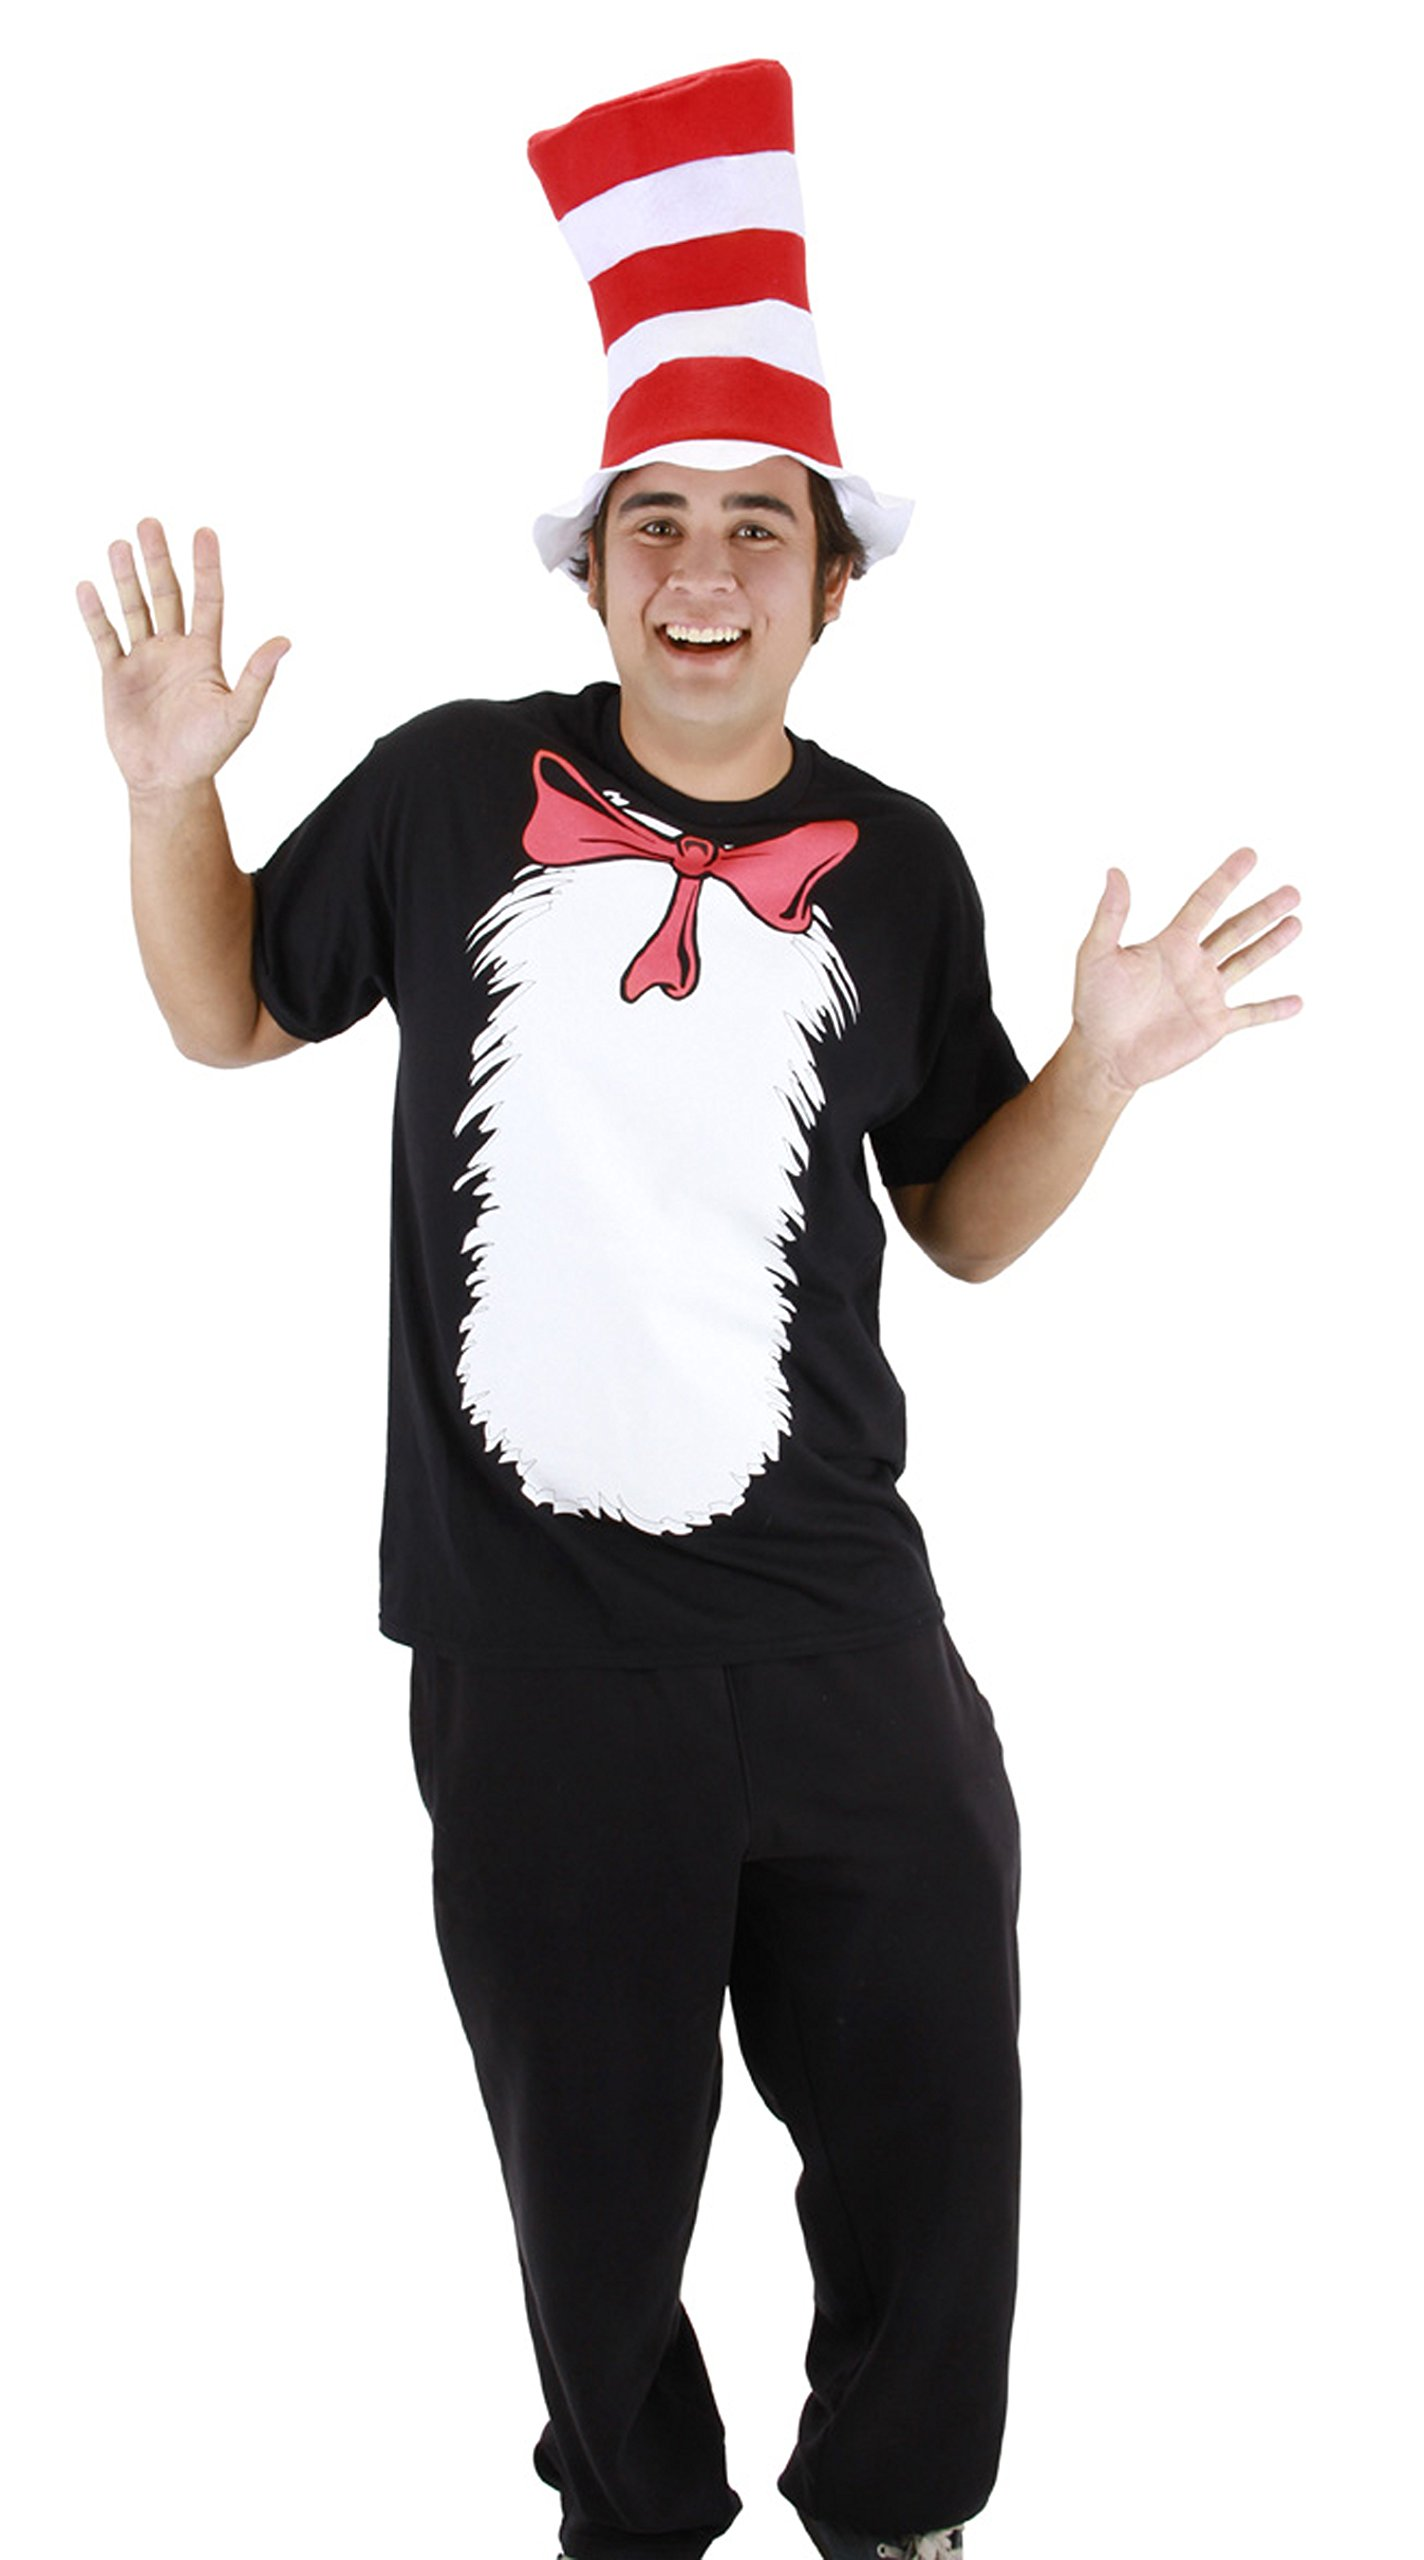 Dr. Seuss Cat in the Hat Short Sleeve T-Shirt with Hat (Mens M) by elope